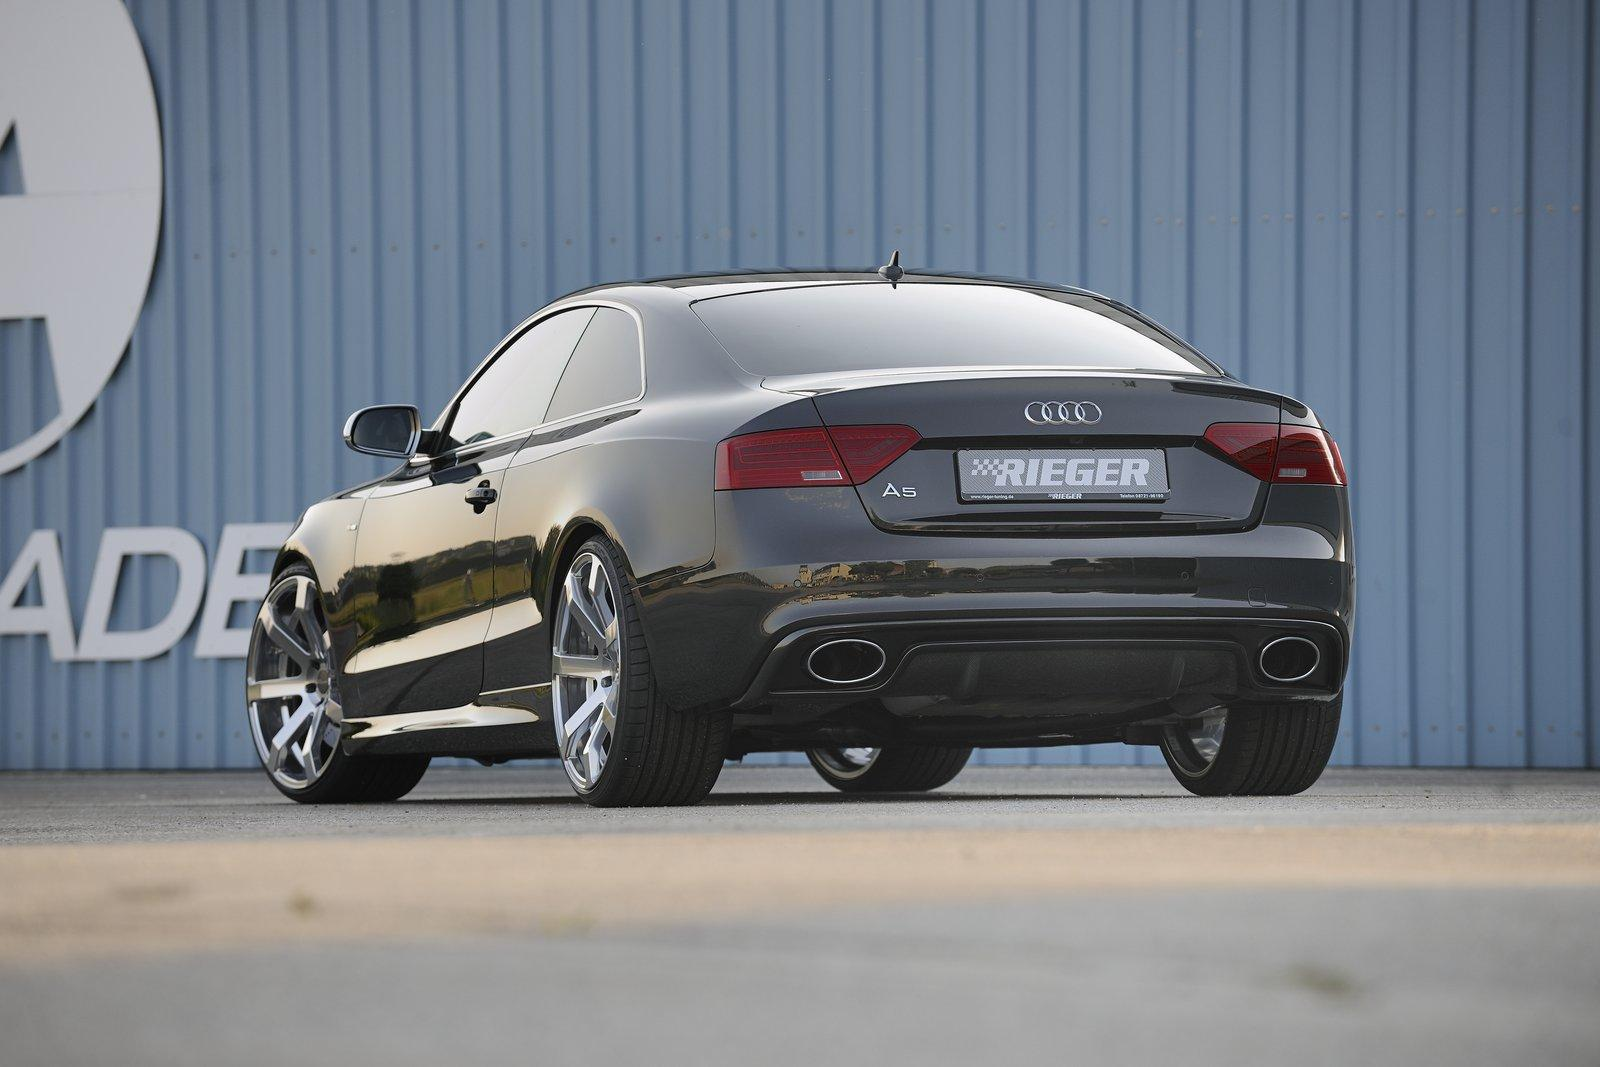 3dtuning Of Audi A5 Coupe 2012 3dtuning Com Unique On